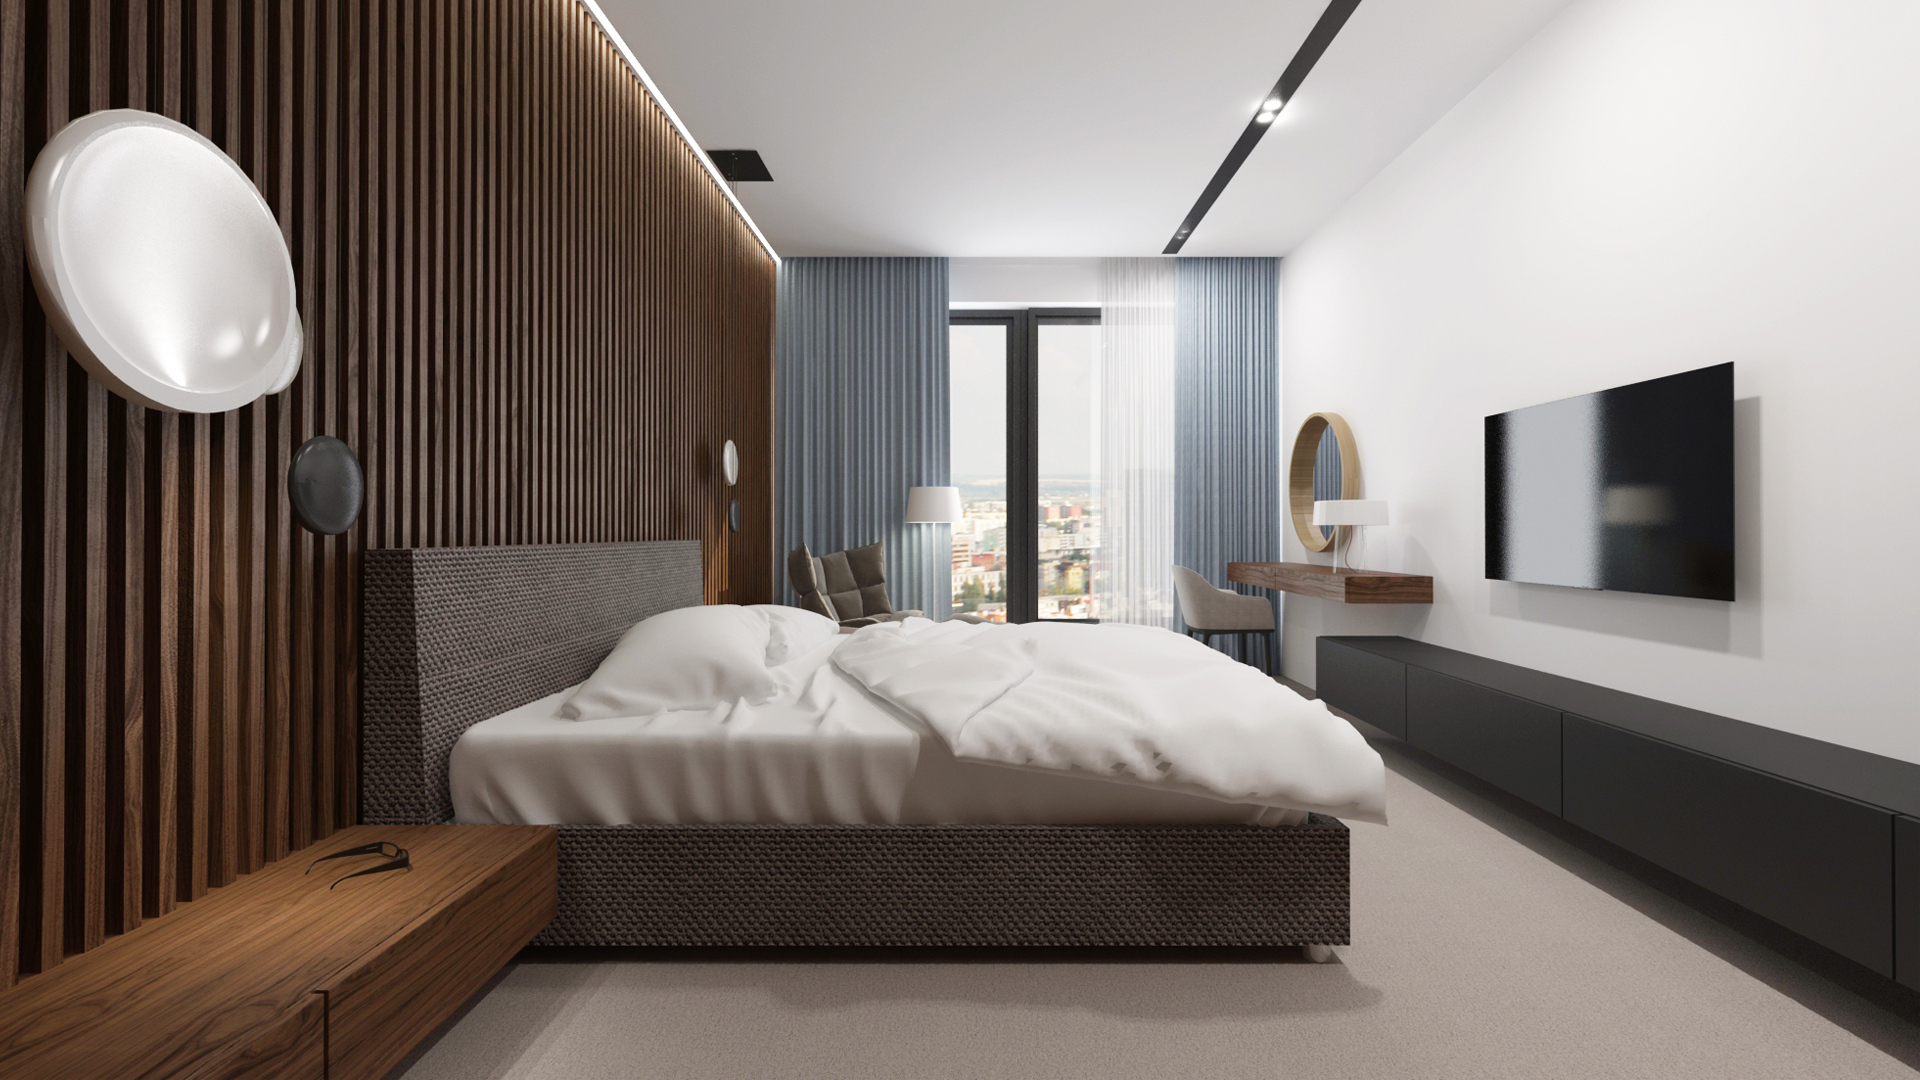 navrh interieru spalne, navrh spalne, interier spalne, interierovy dizajn, interierovy dizajner, veronika paluchova, bedroom design, walnut design, orech, dyha, design room, flexteam bed, walnut interior, walnut penthouse interior, penthouse design, penthouse interior design, vibia light,